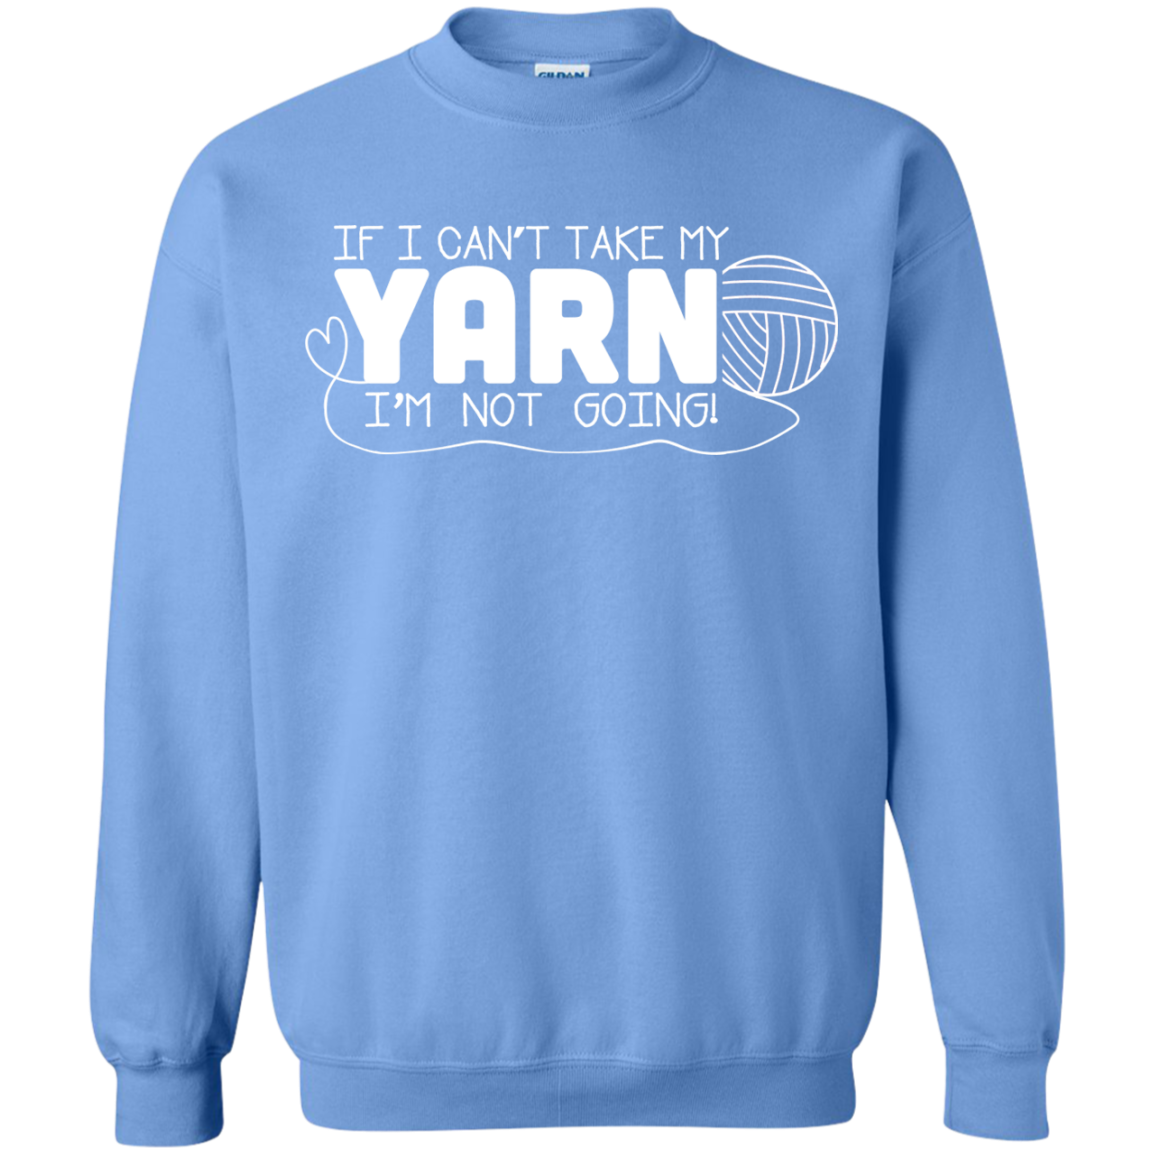 If I Cant Take My Yarn Not Going Sweatshirts